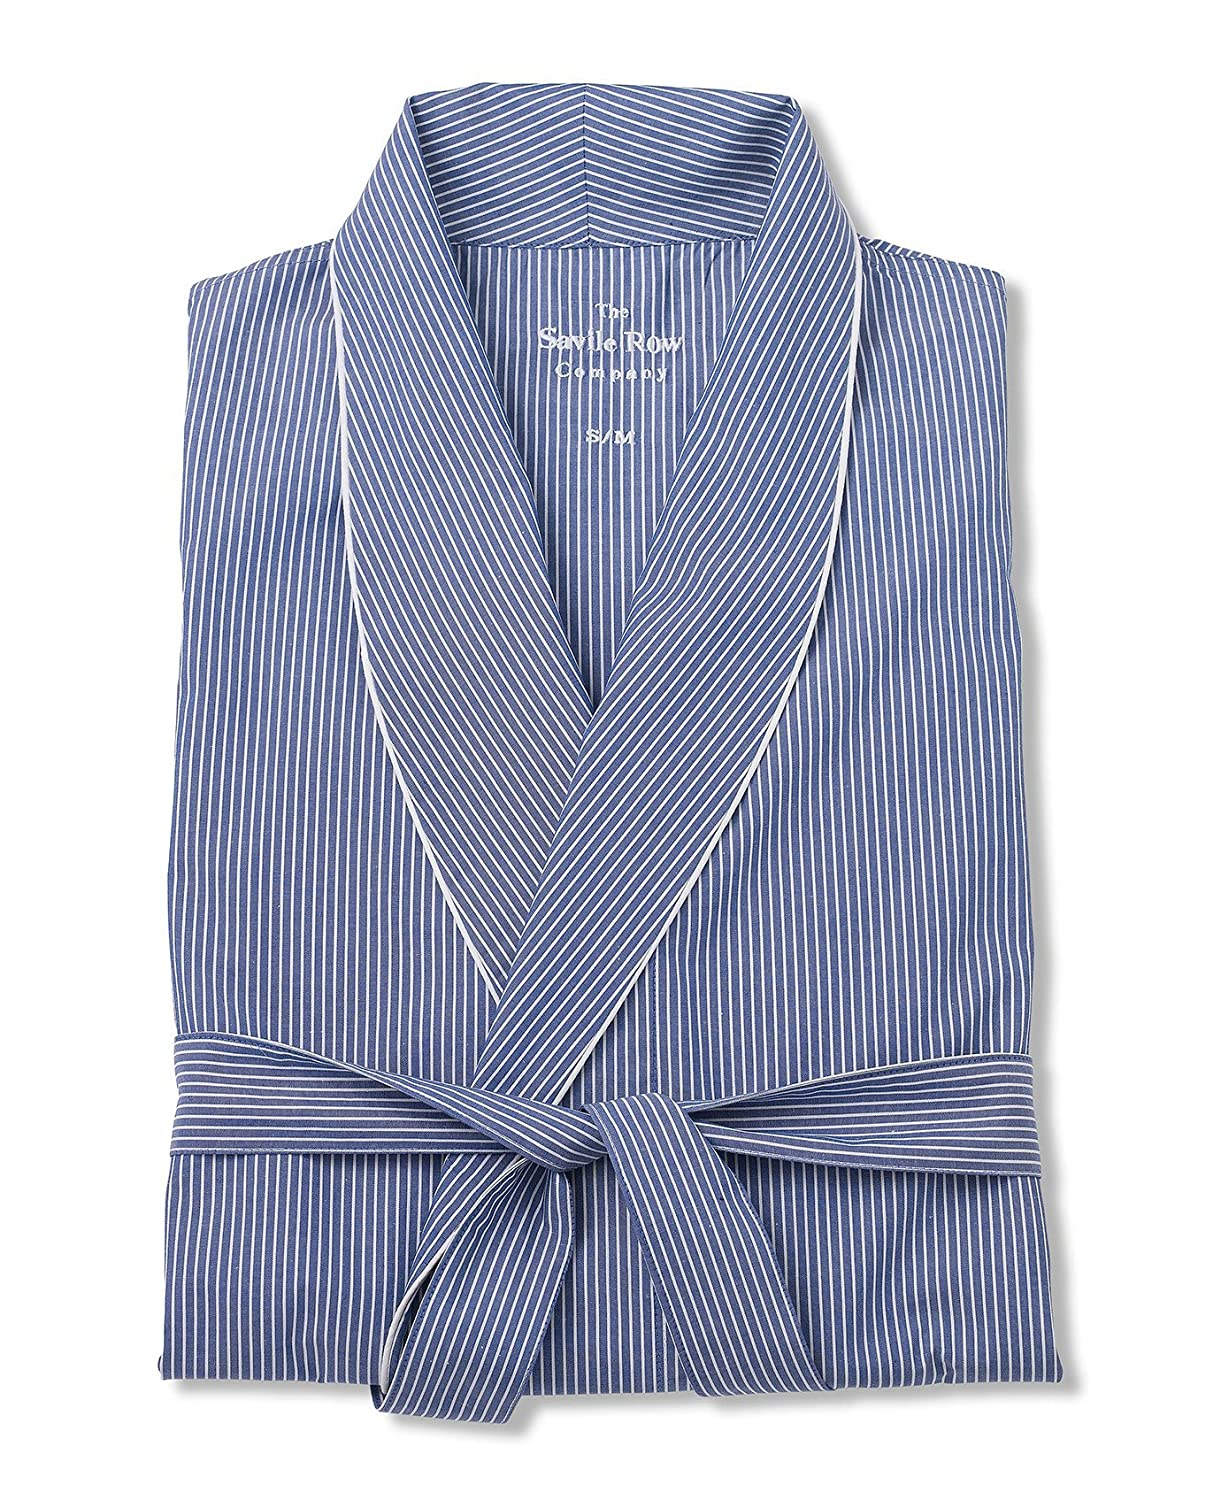 Savile Row Men's Navy White Stripe Dressing Gown брюки cross sport брюки